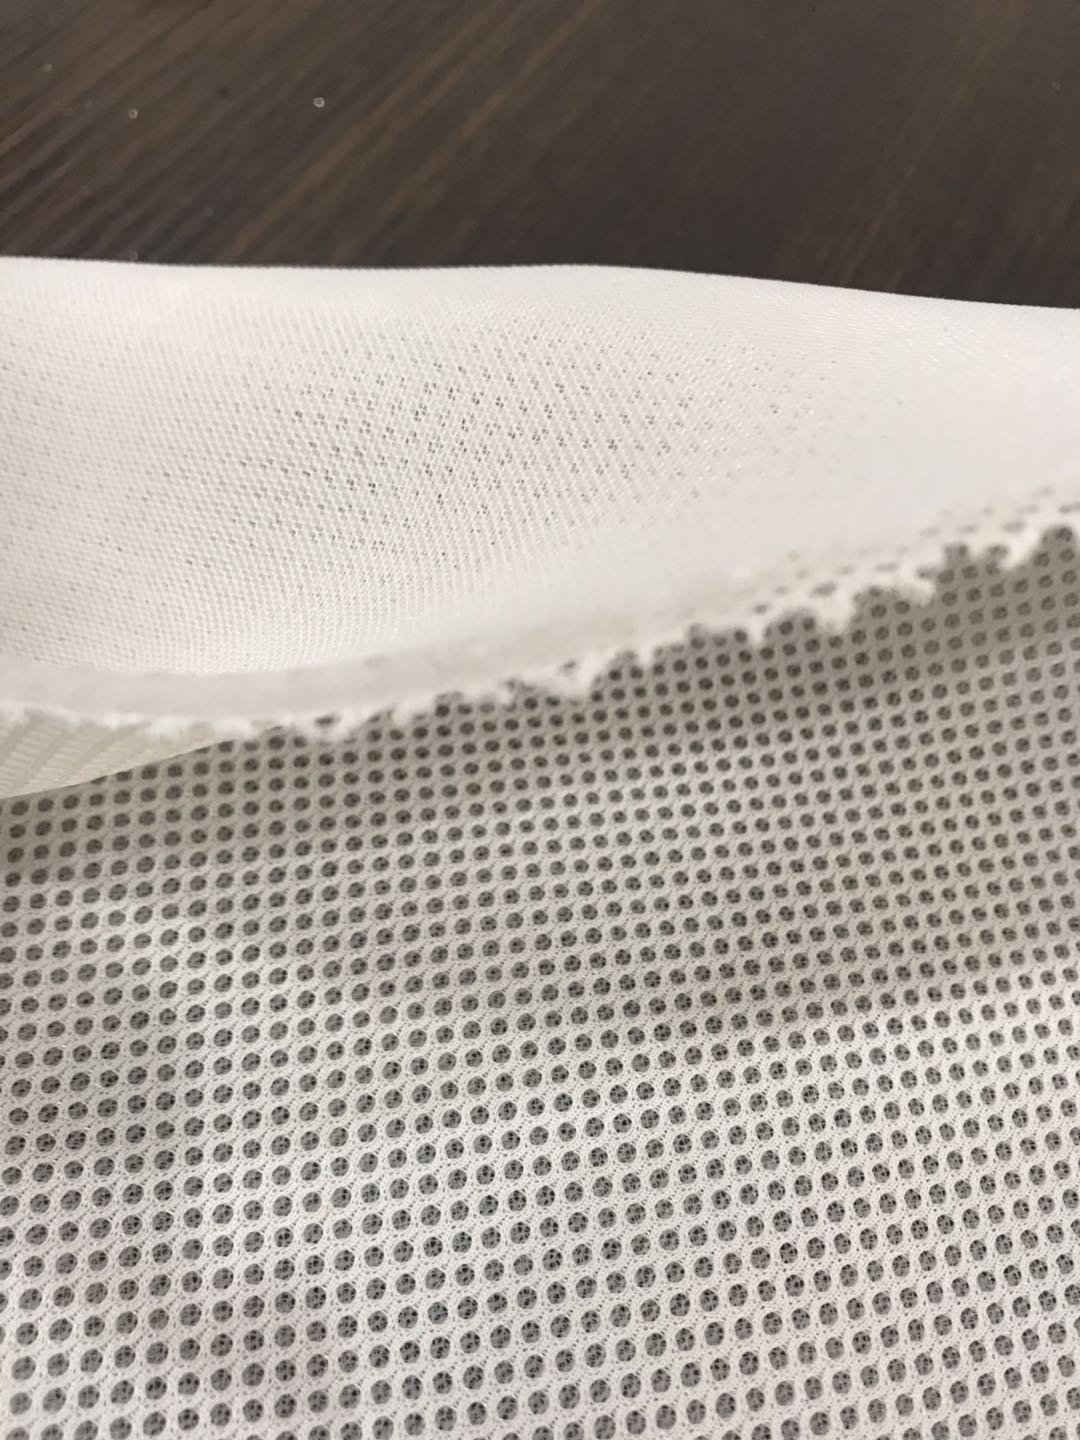 100% Polyester Mesh Fabric